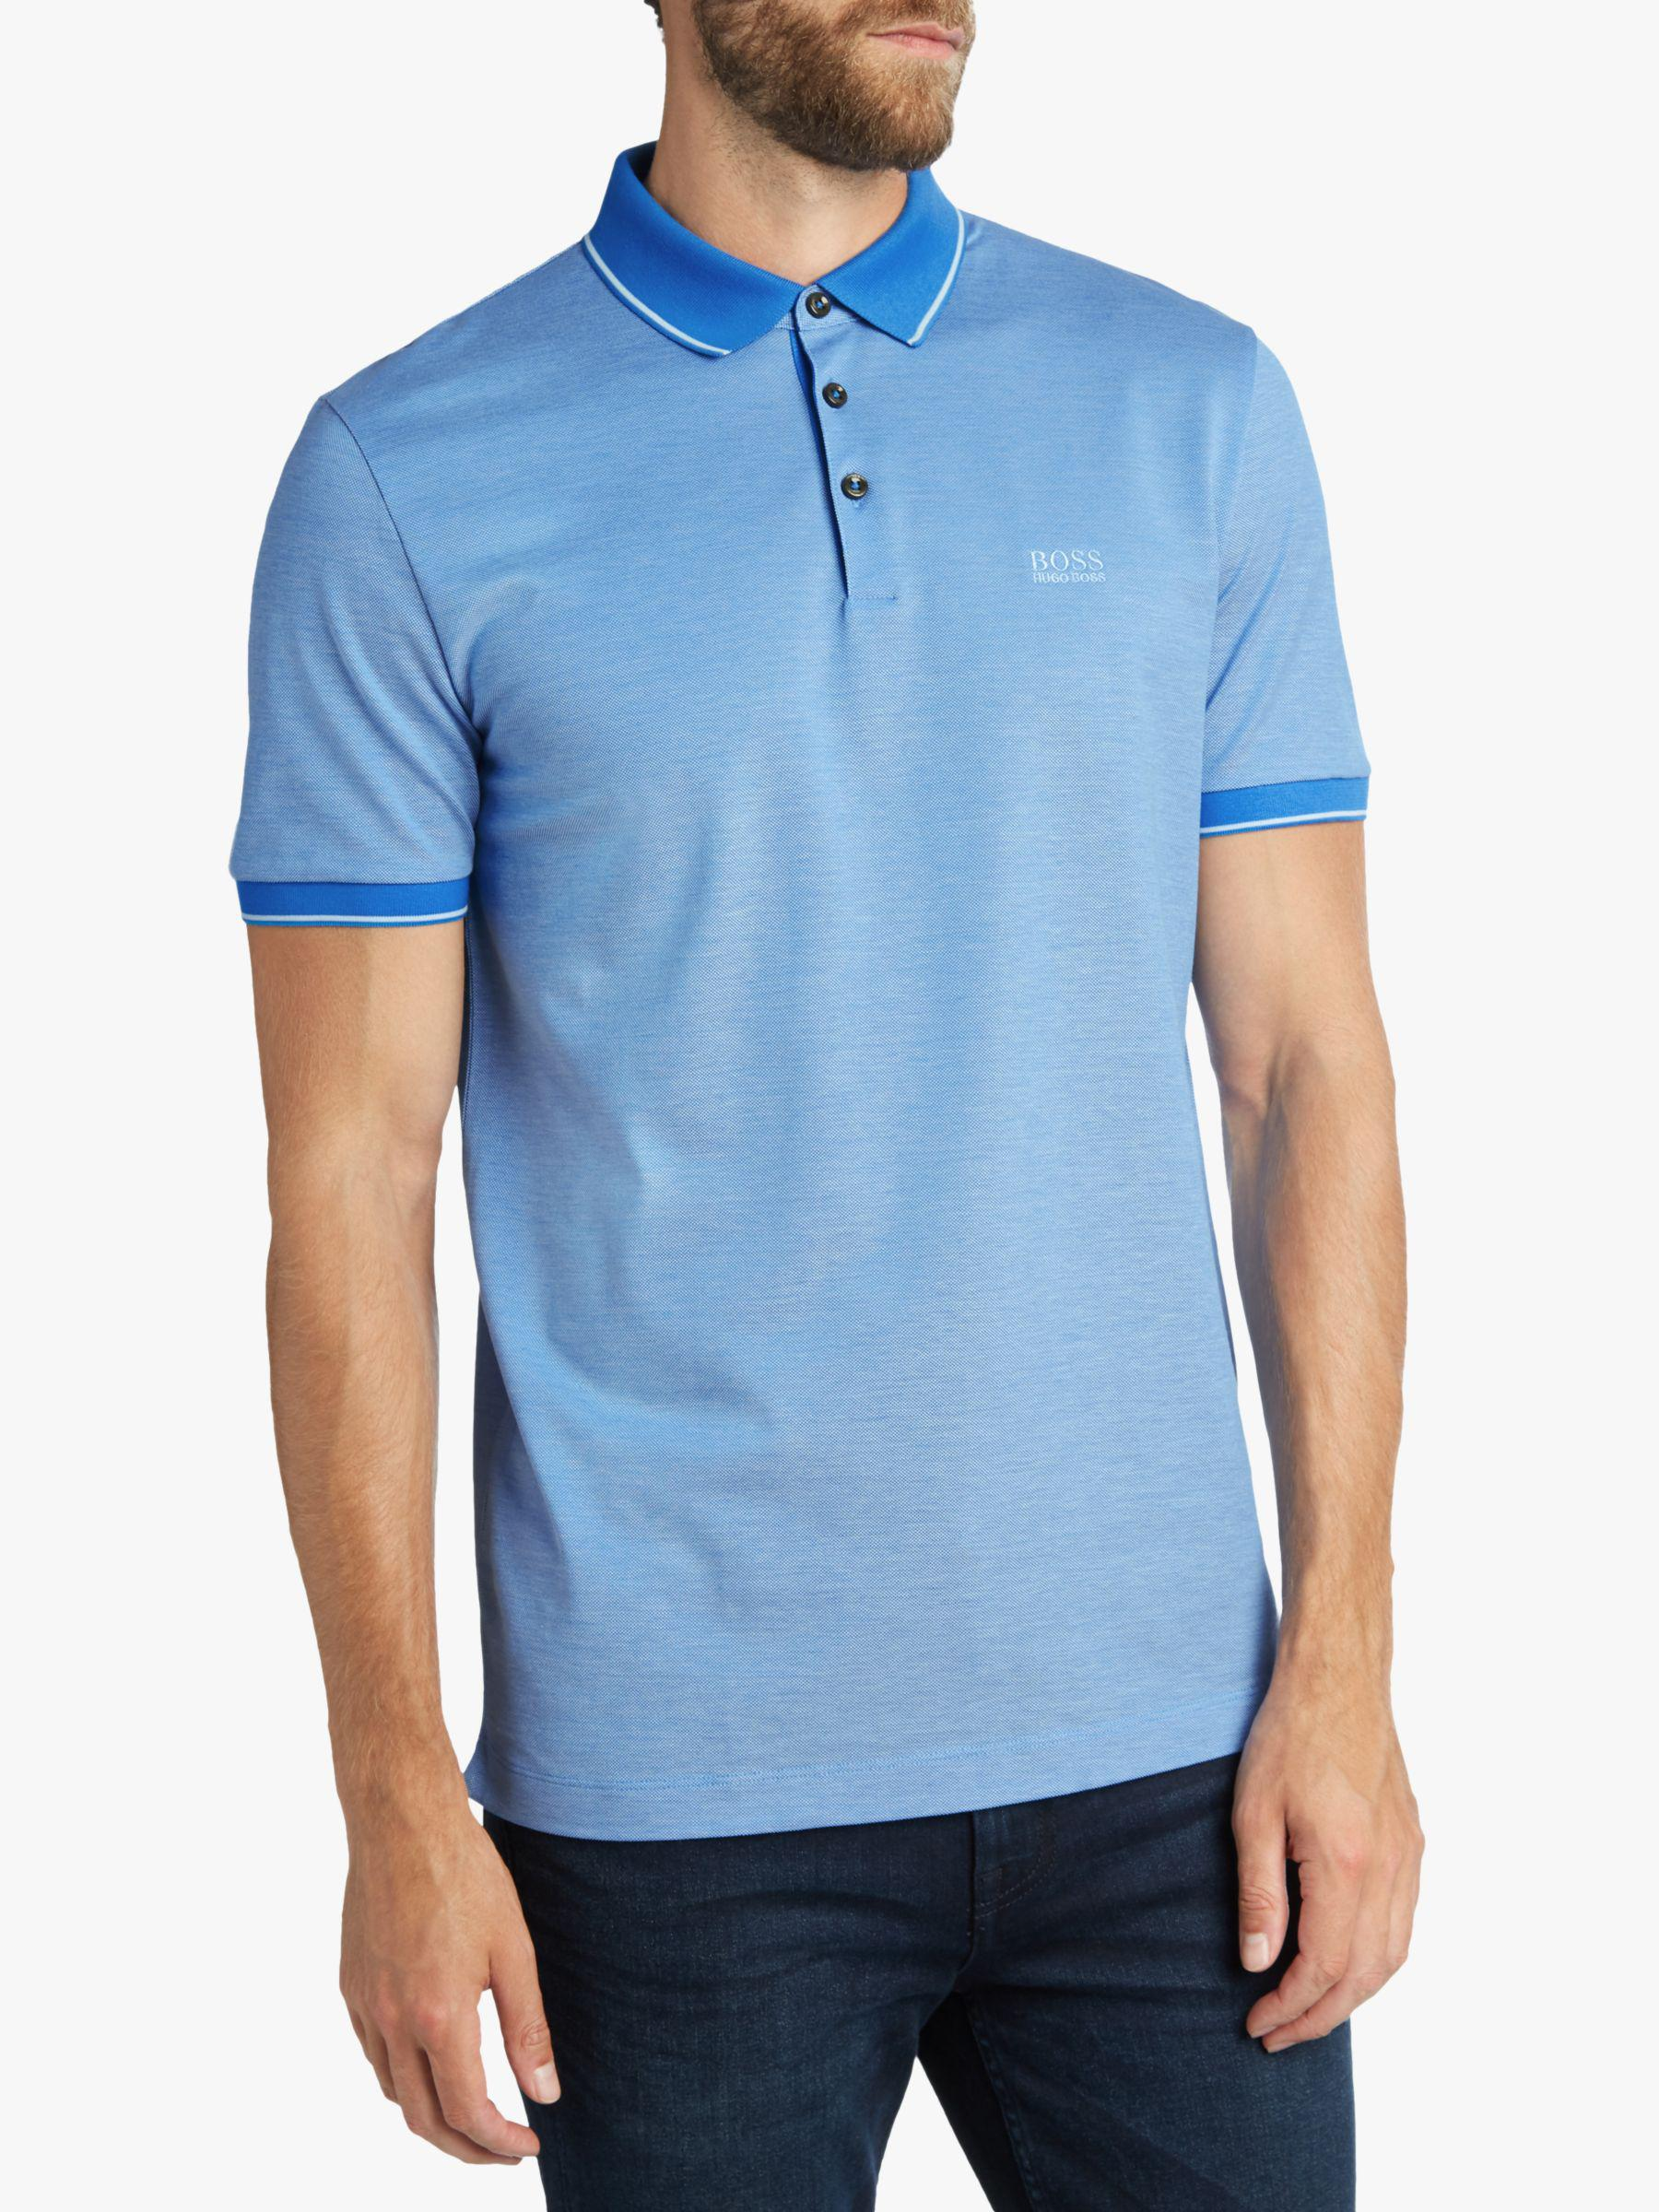 068e580360d6 BOSS. Men's Blue Boss Prout Short Sleeve Polo Shirt. £99 From John Lewis  and Partners ...